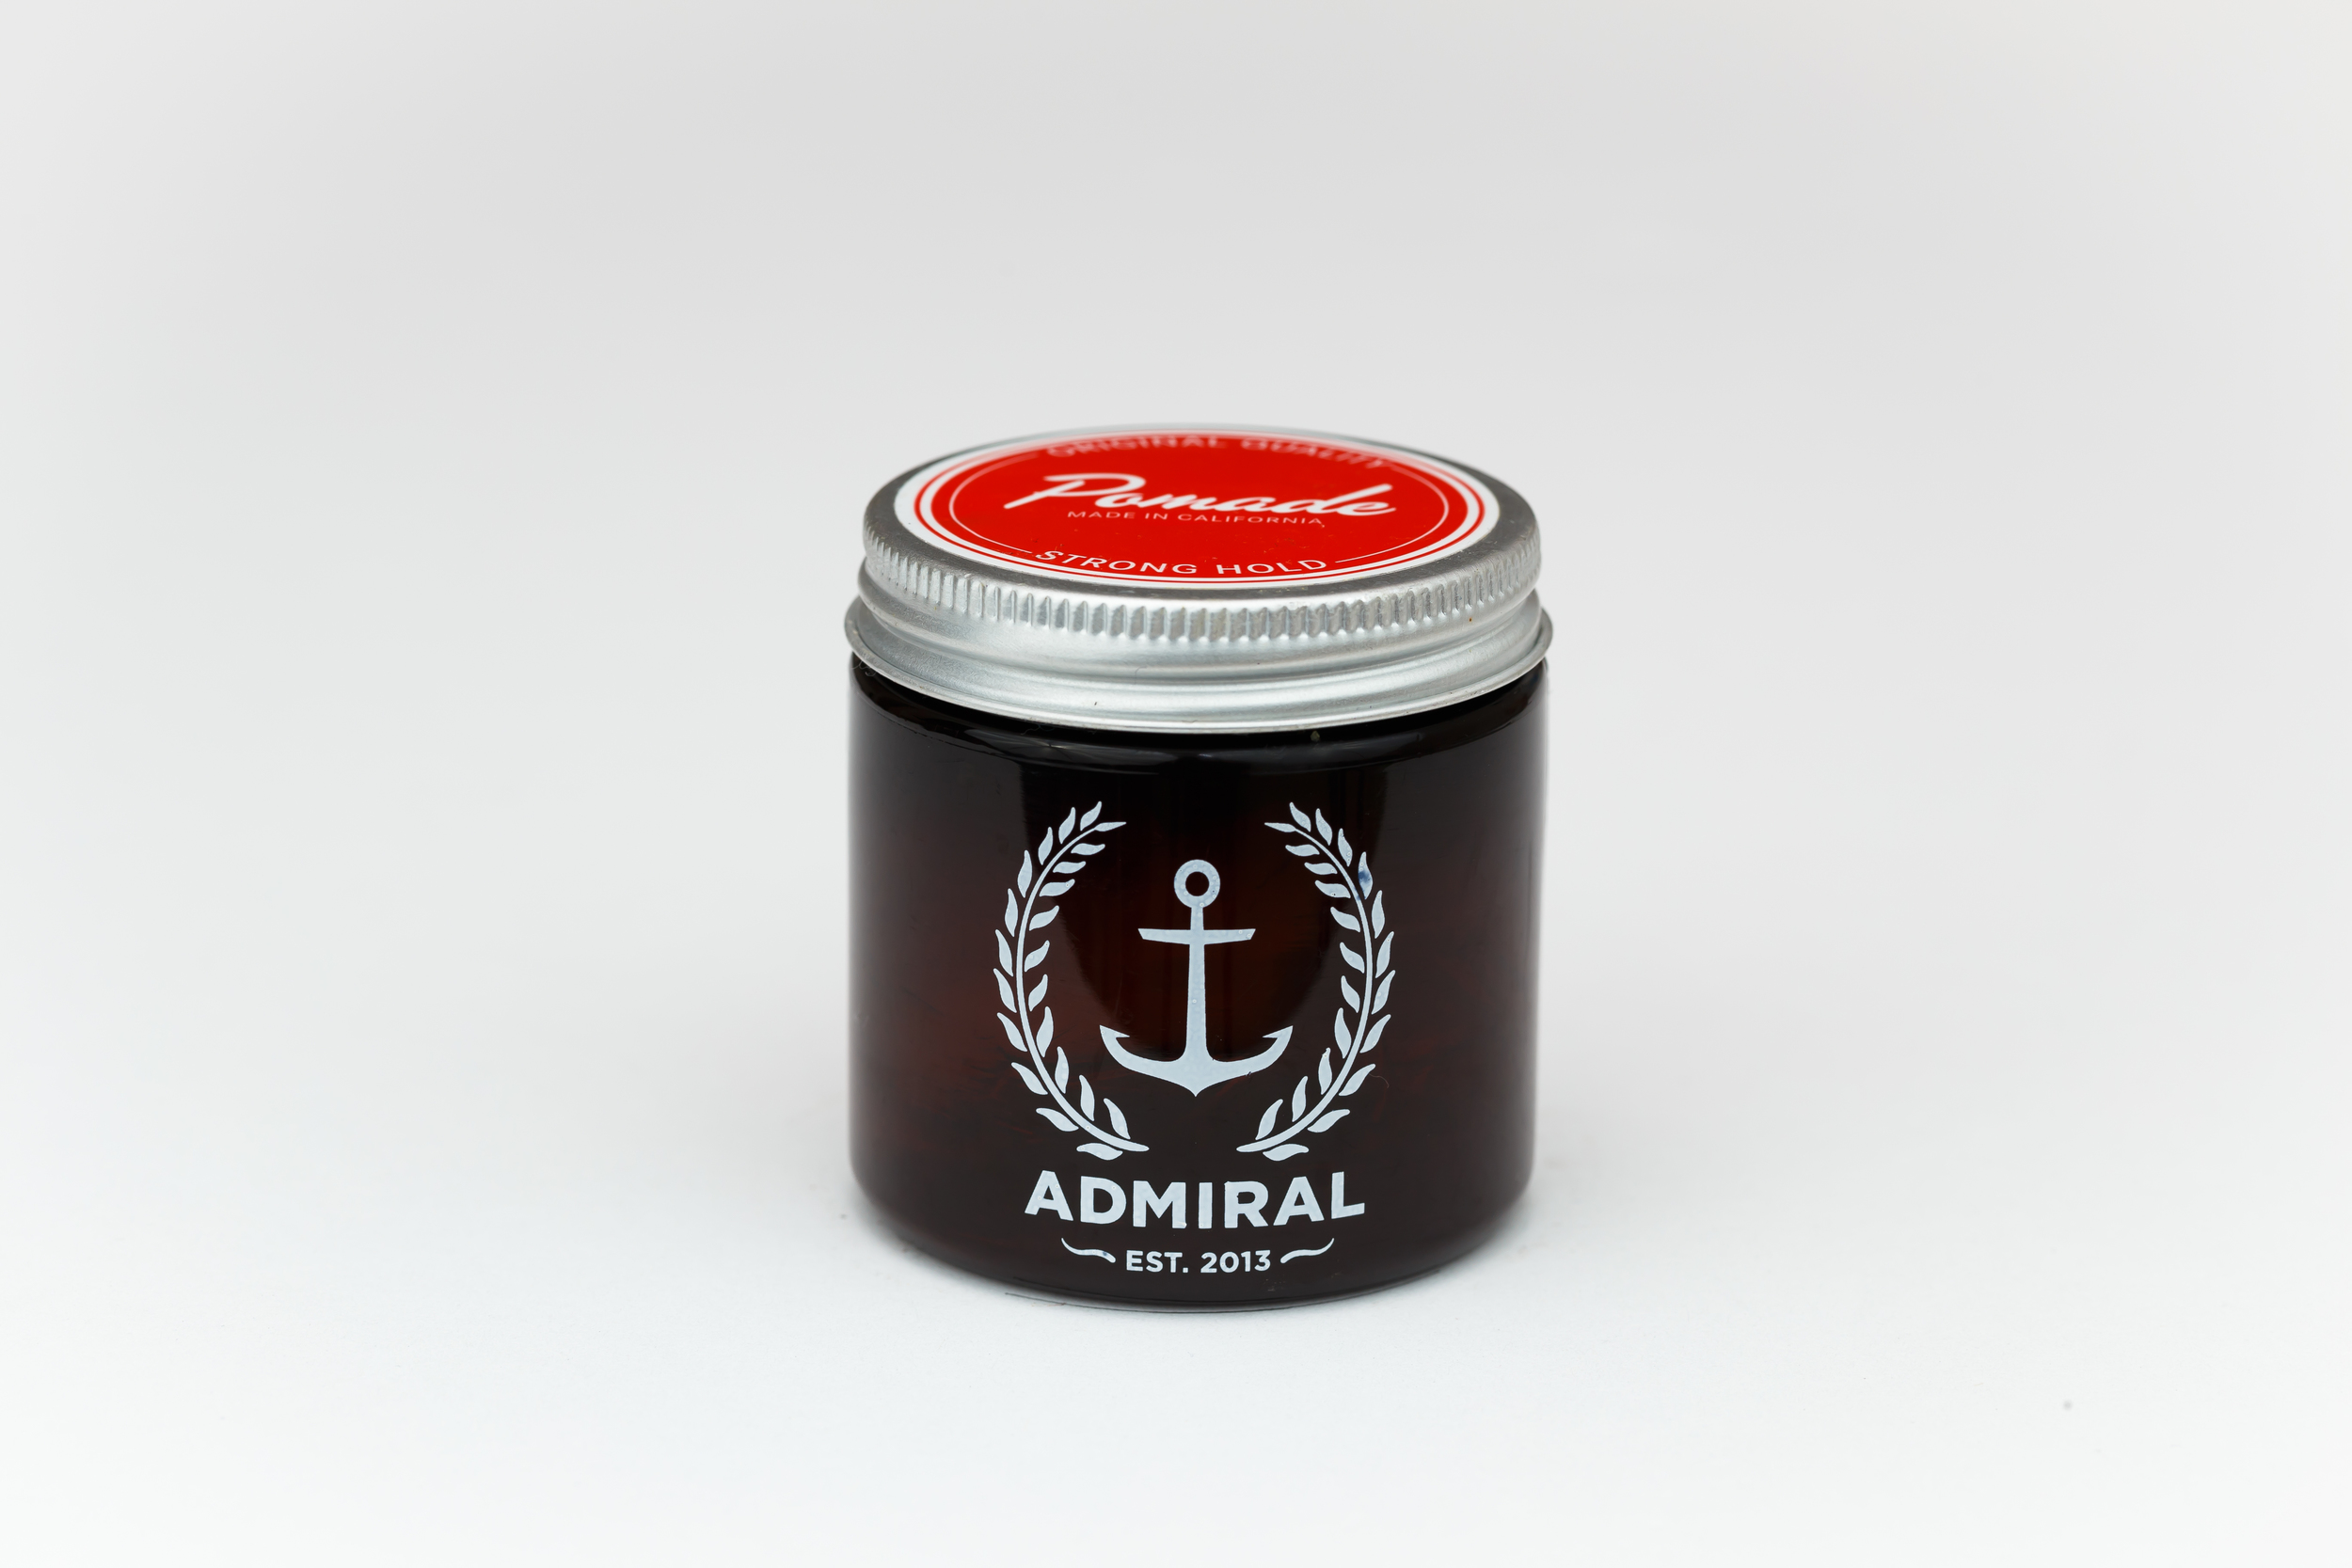 Admiral Pomade -- $10.80 with promo code THEPOMP